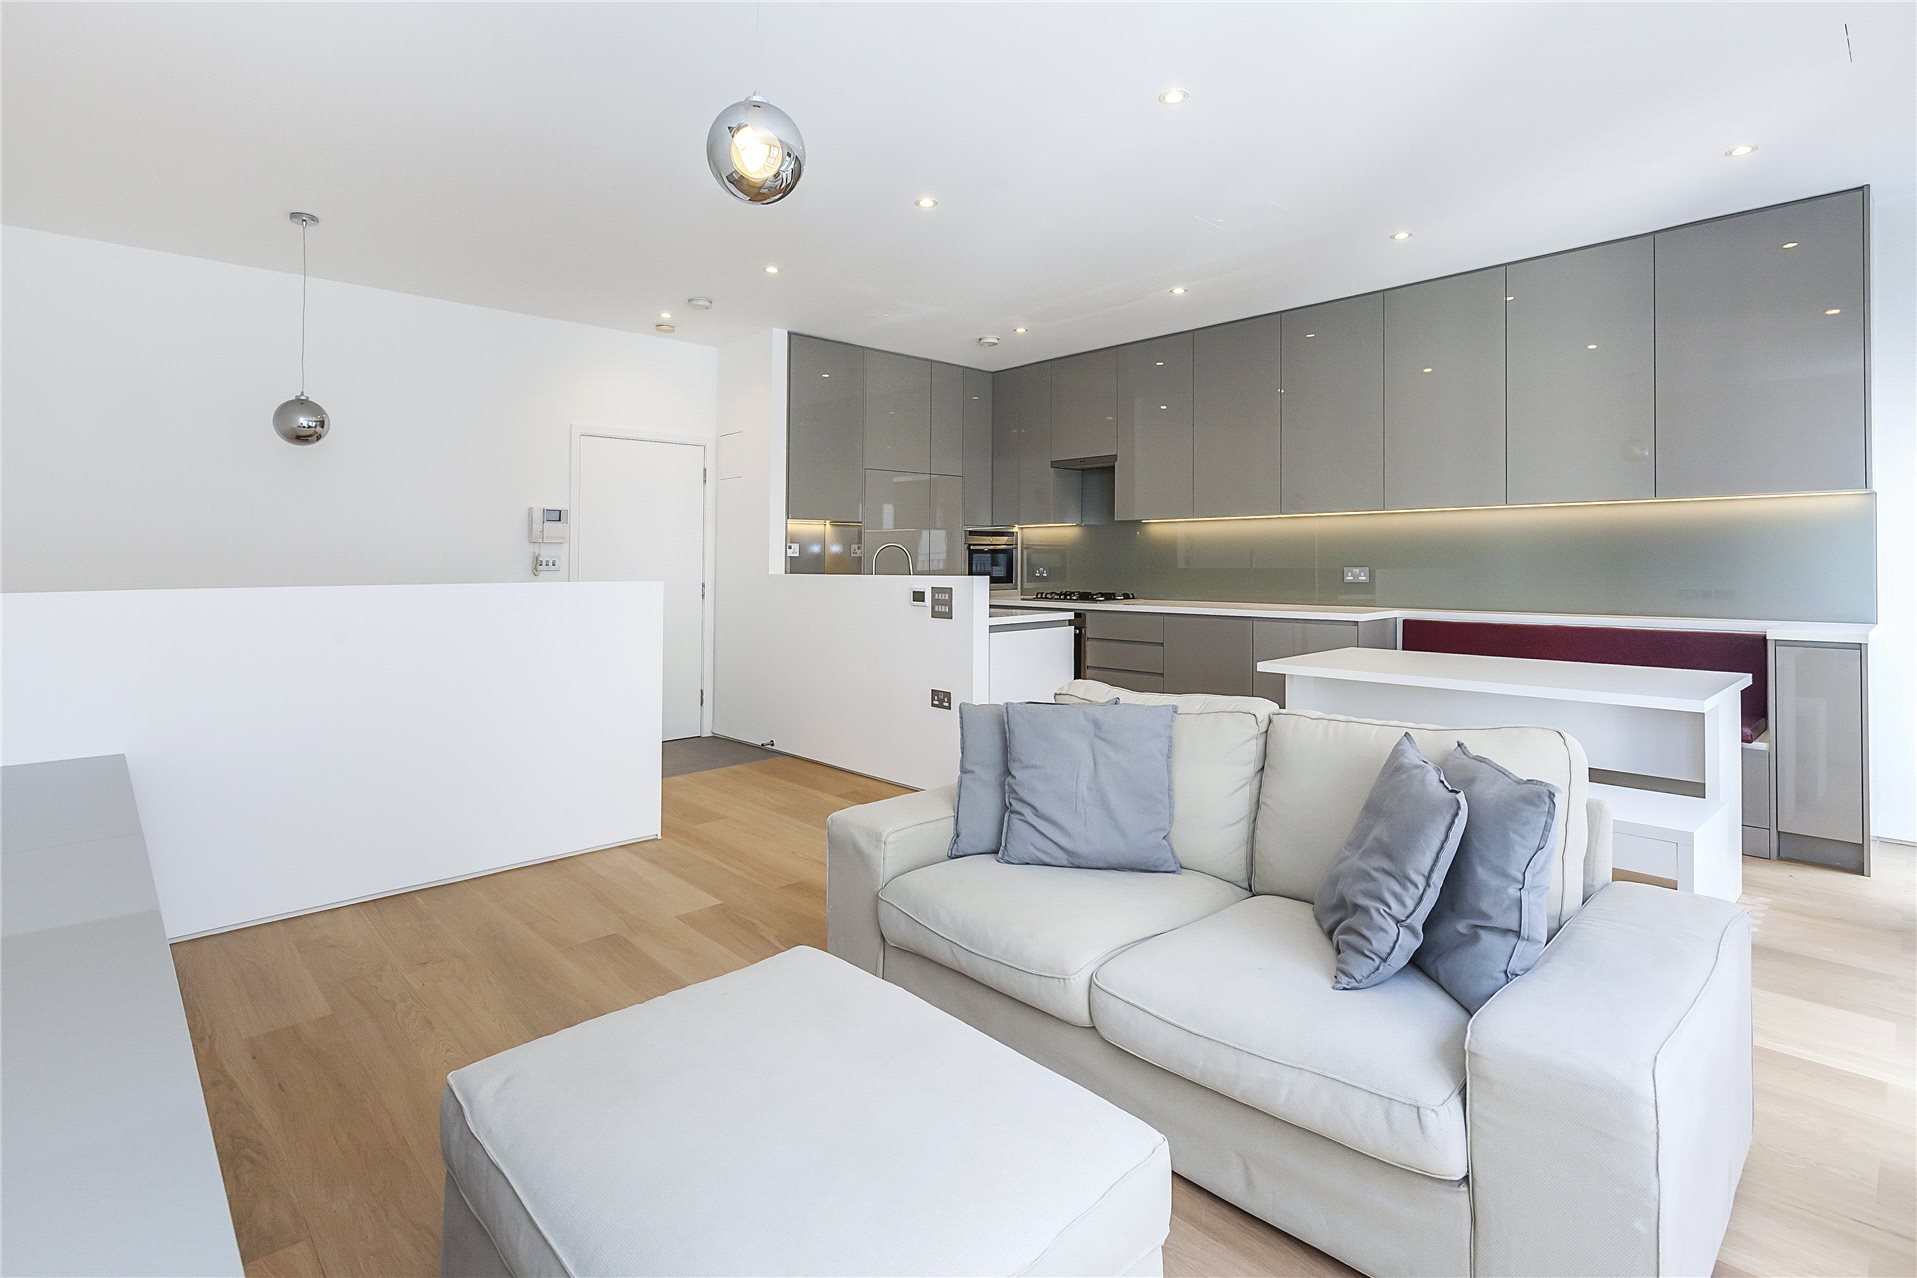 2 Bedrooms House for sale in Anlaby House, 37 Boundary Street, London, E2